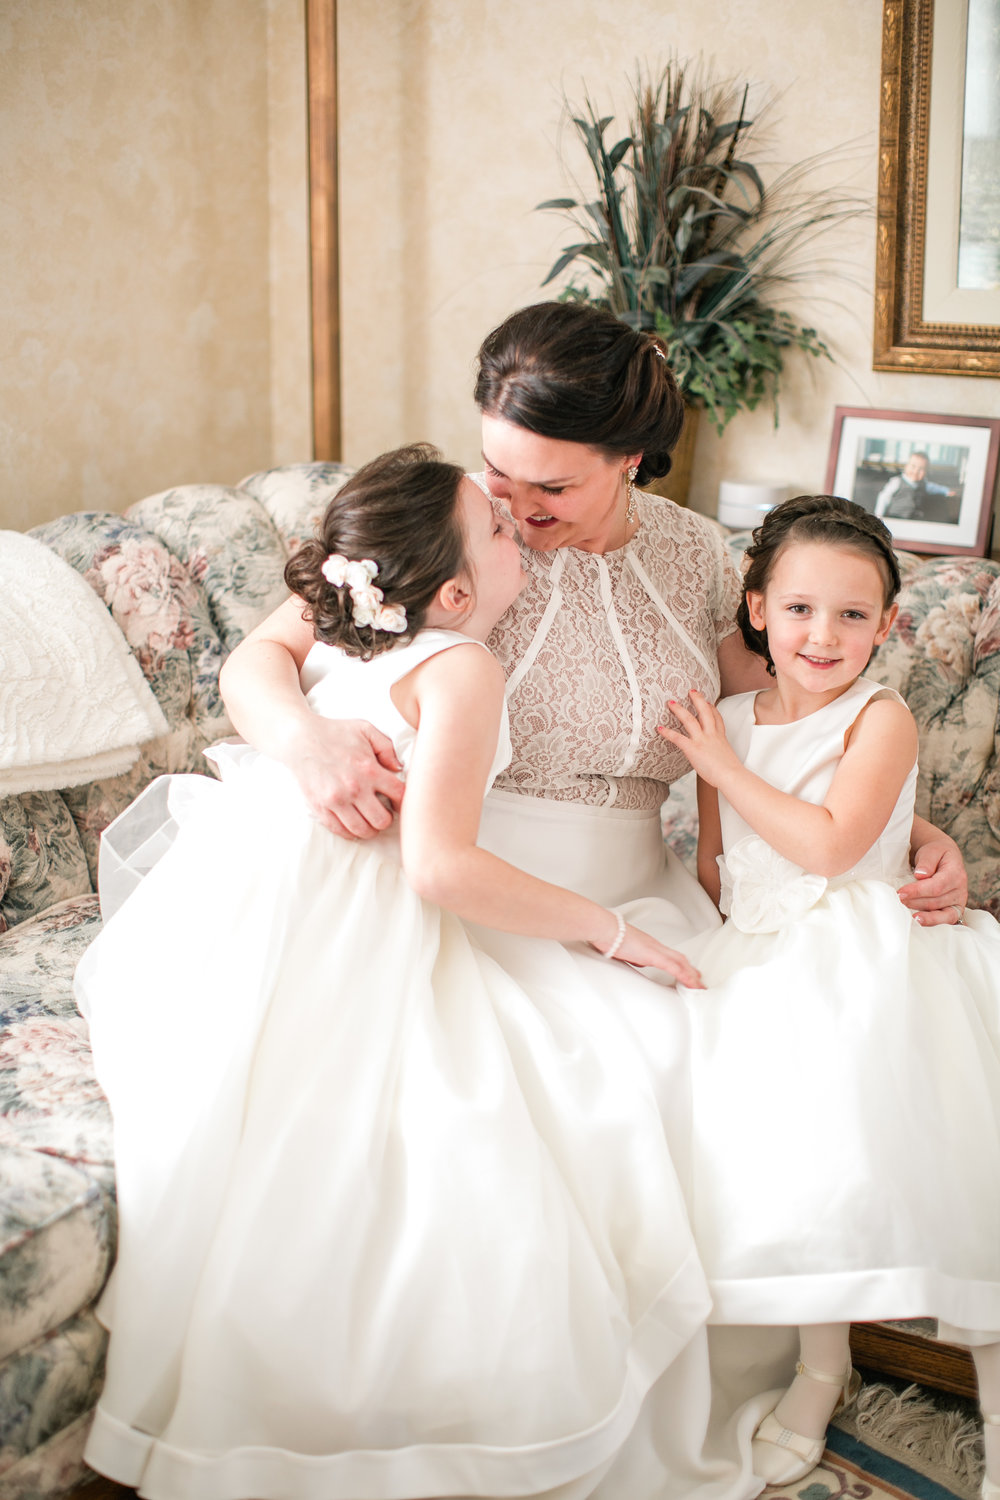 bride with her two daughters kissing in white dresses on couch wedding day des moines